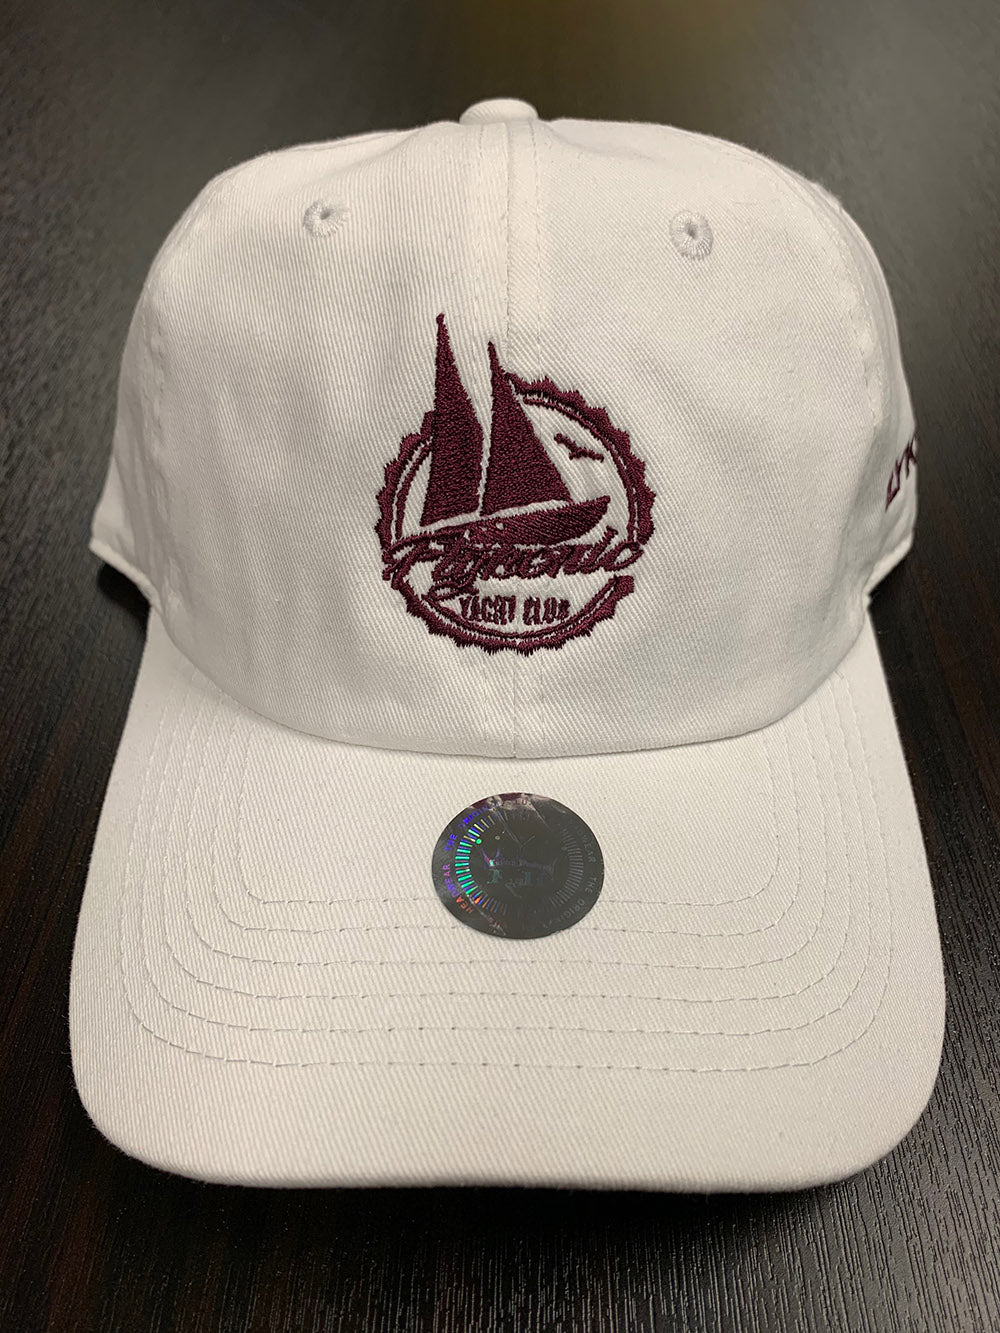 Flykonic Yacht Club Dad Hat on White Maroon Stitching